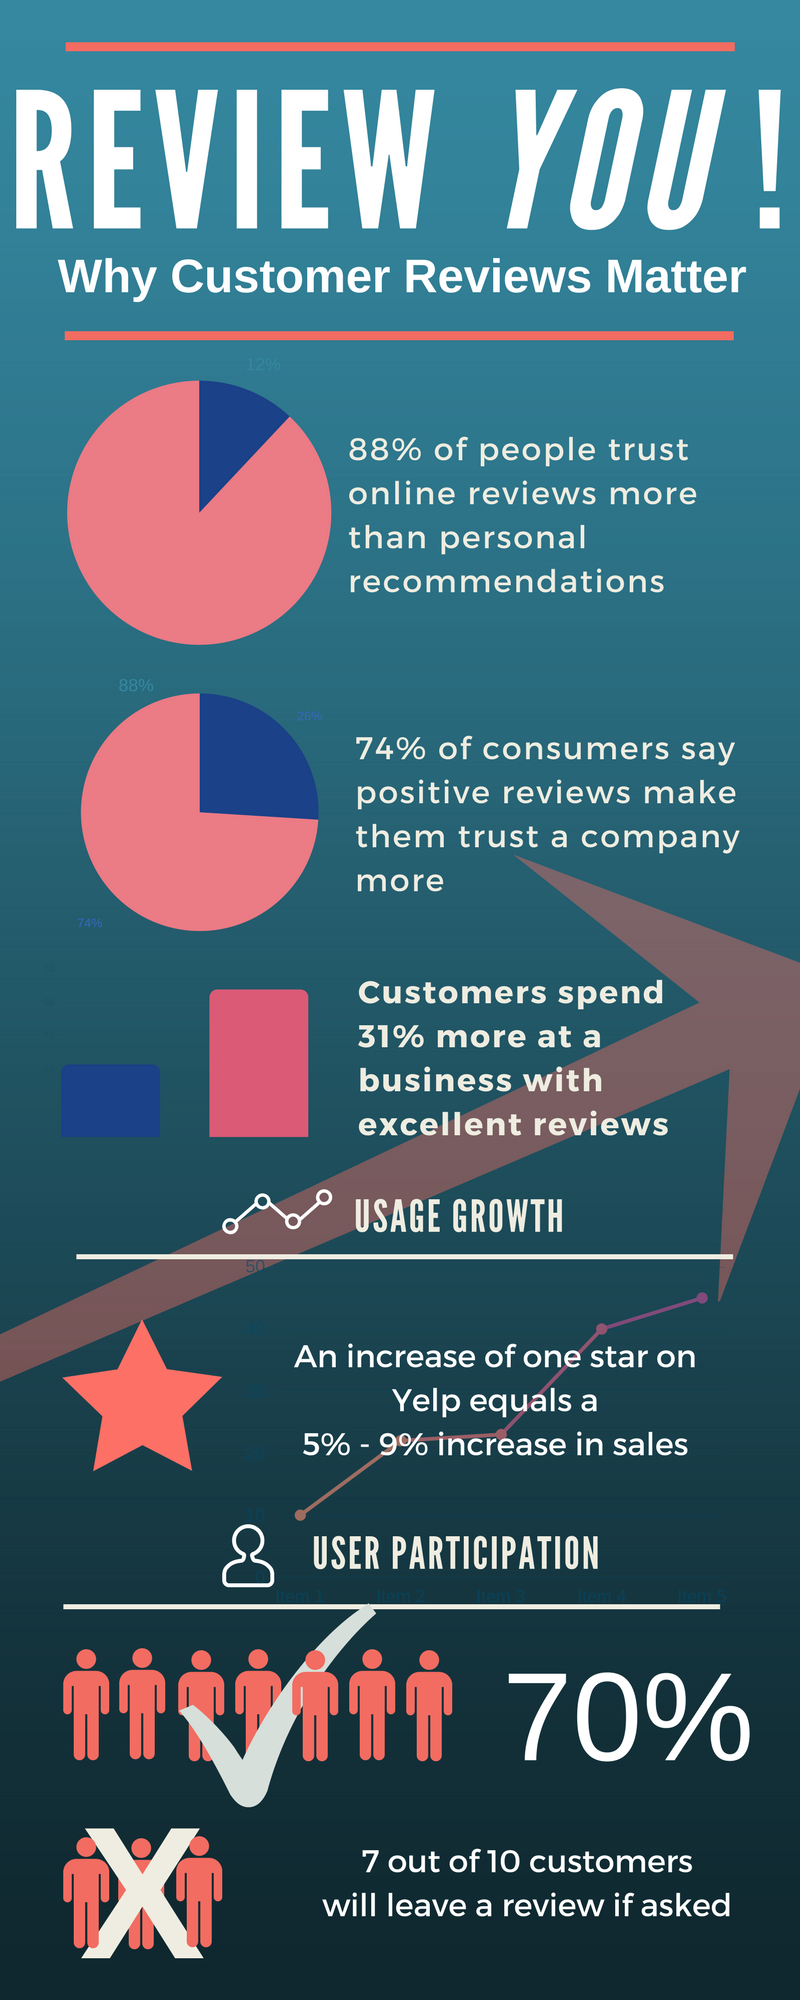 Customer Reviews Matter to Your Busienss